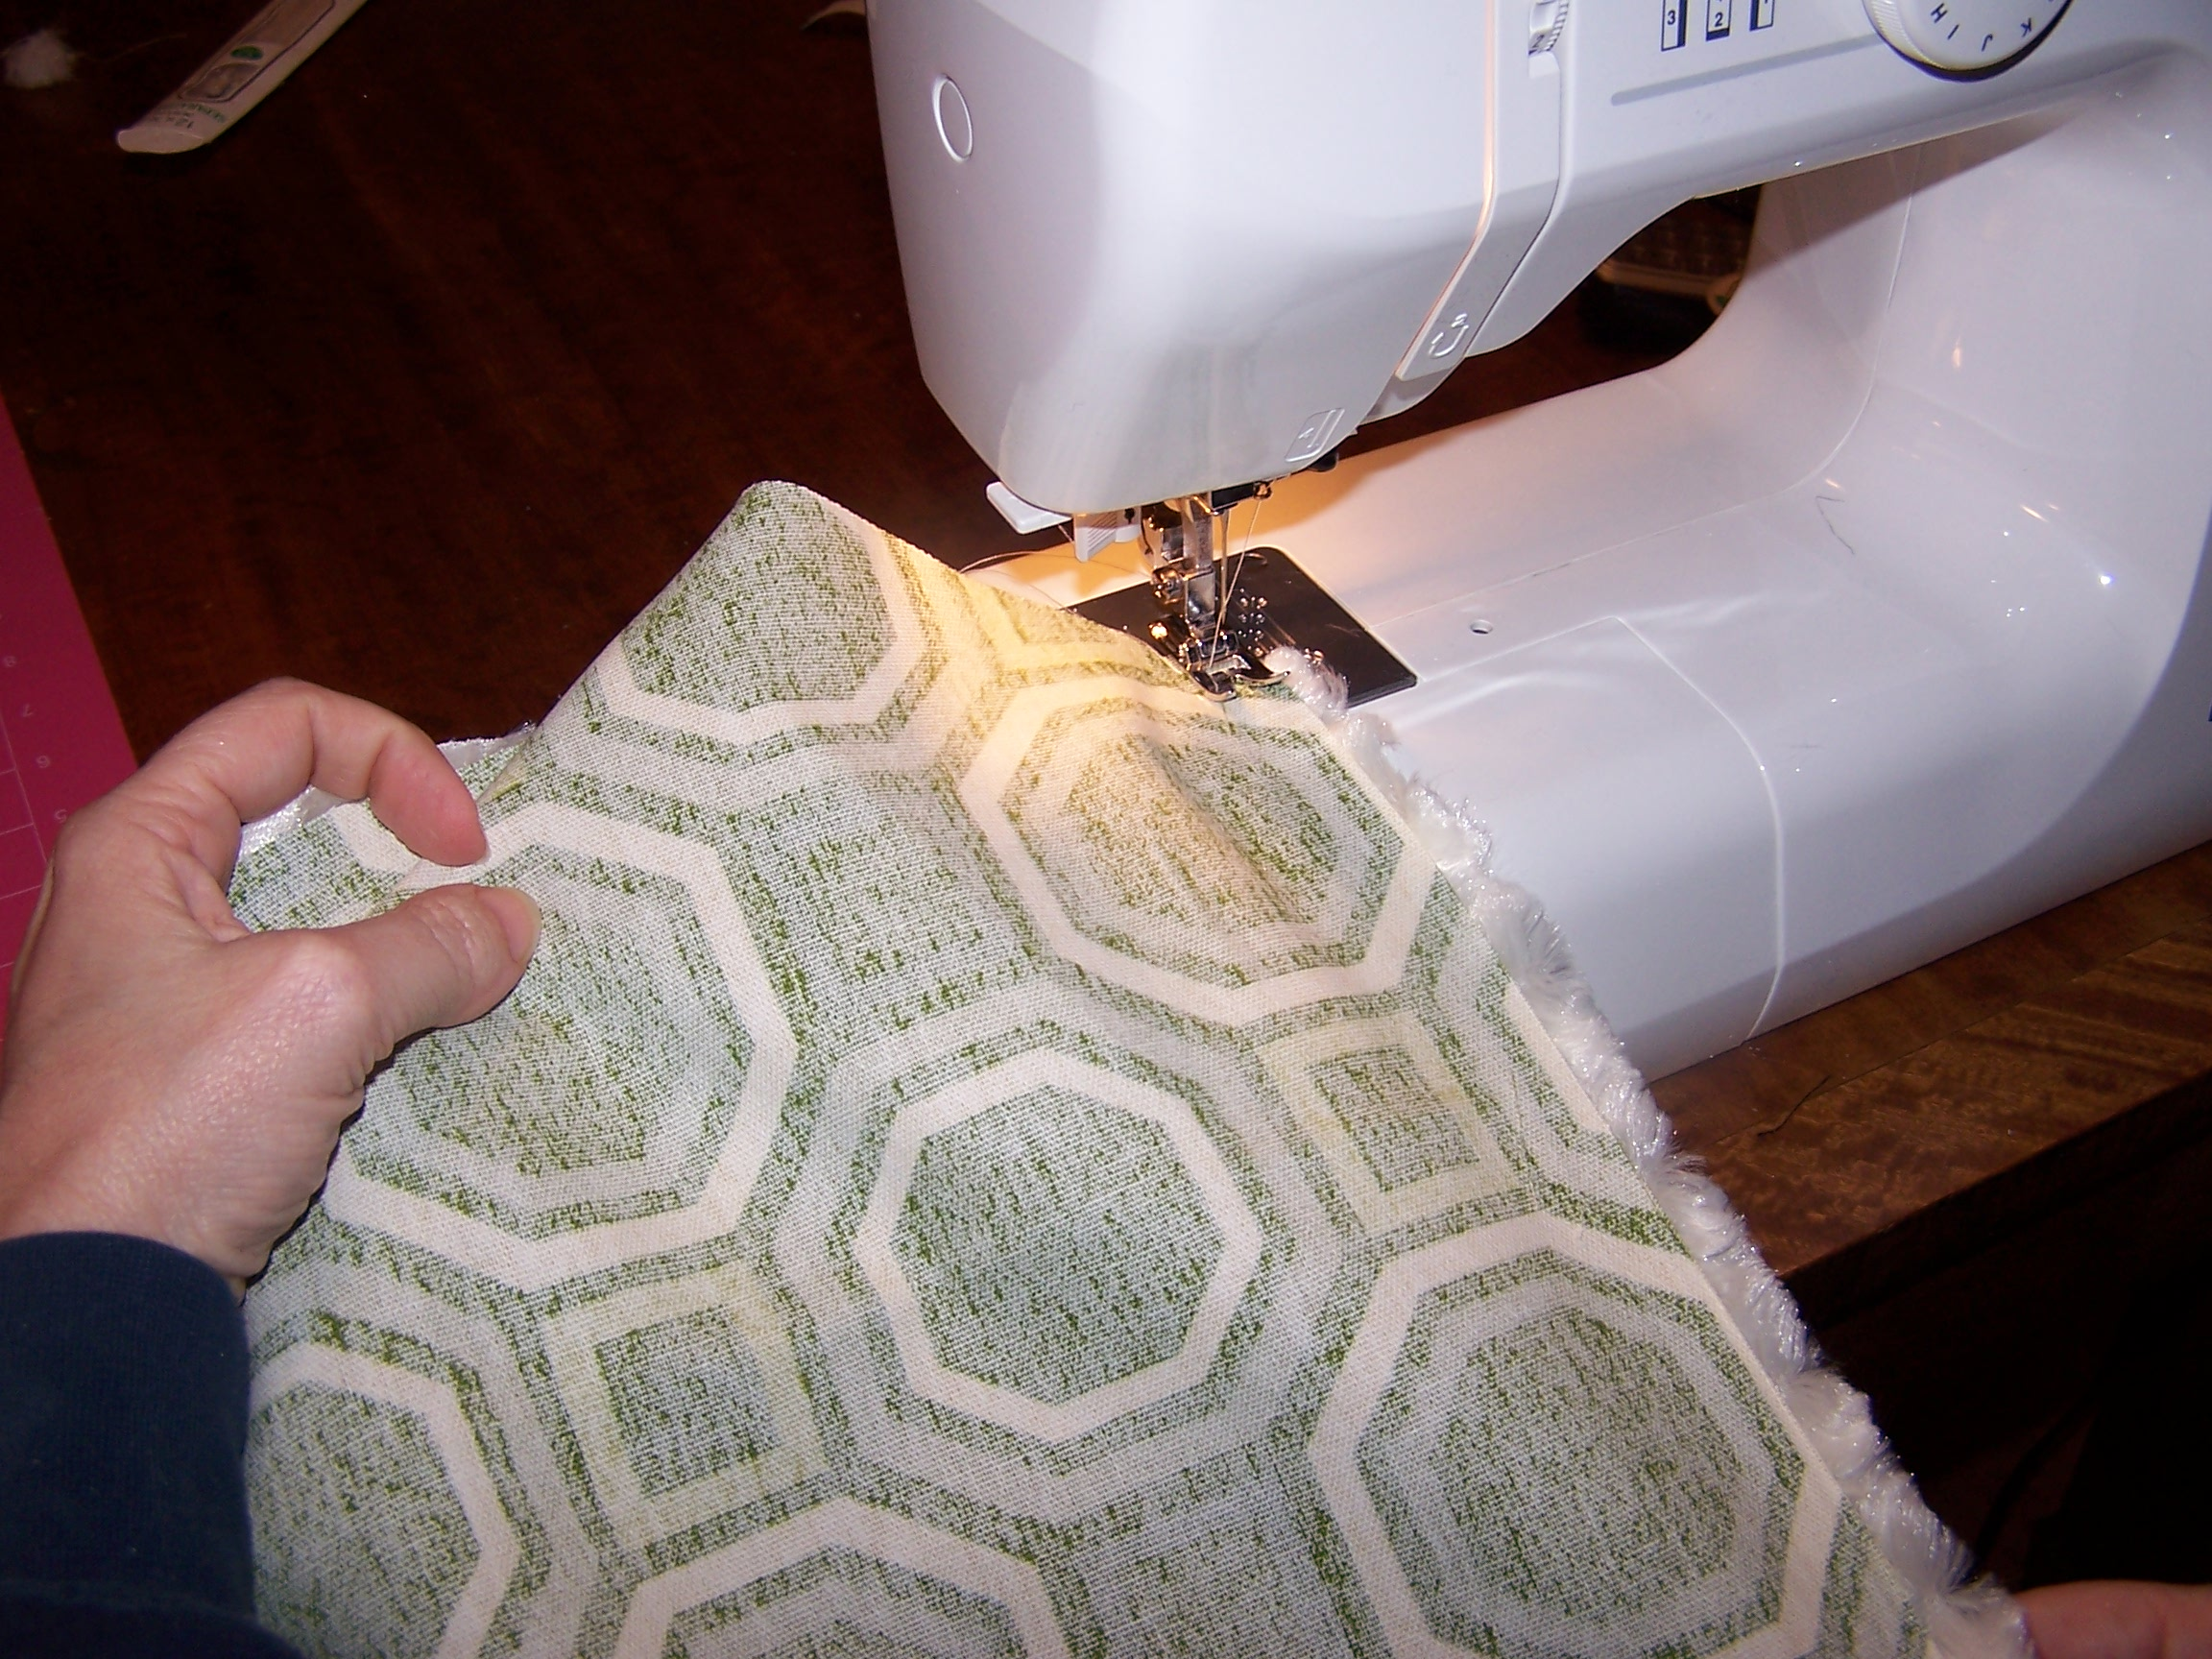 Picture of Sewing Bottom Rail and Curved Seam